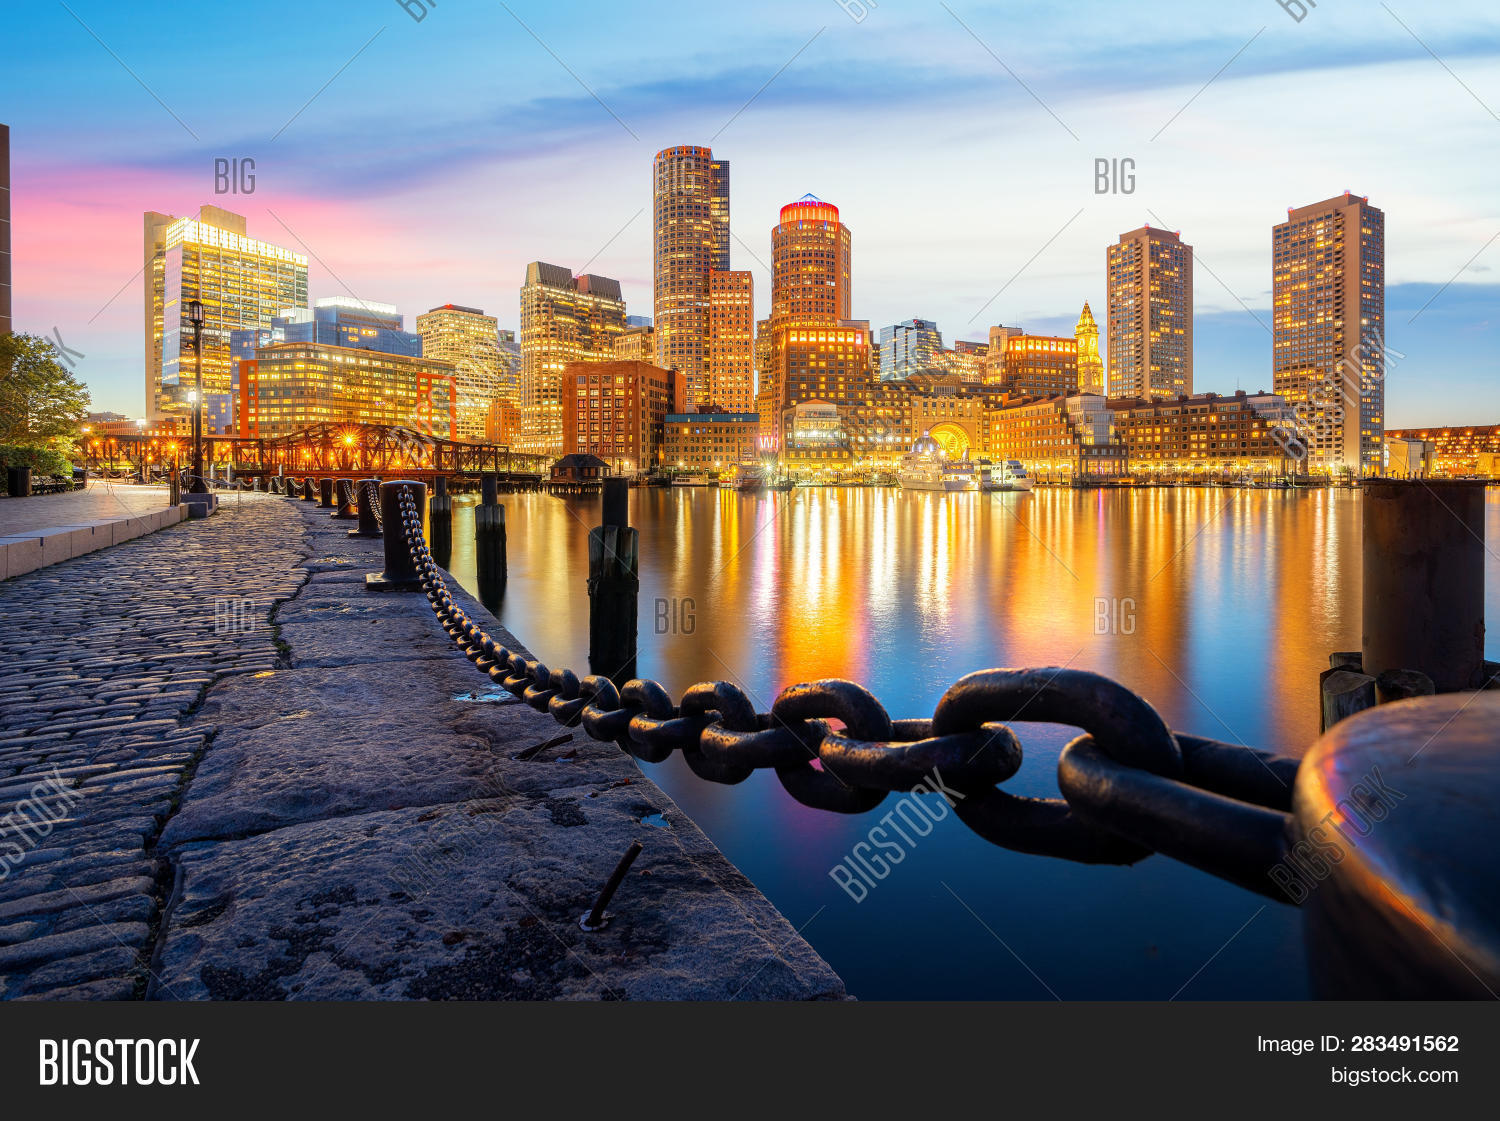 america,american,architecture,bay,boston,building,business,capital,city,cityscape,district,downtown,dusk,england,estate,famous,financial,harbor,landmark,light,ma,massachusetts,metropolis,modern,new,night,panorama,panoramic,park,party,pier,real,reflection,scene,sightseeing,skyline,skyscraper,states,summer,sunset,tourism,travel,twilight,united,urban,usa,vacation,view,water,waterfront